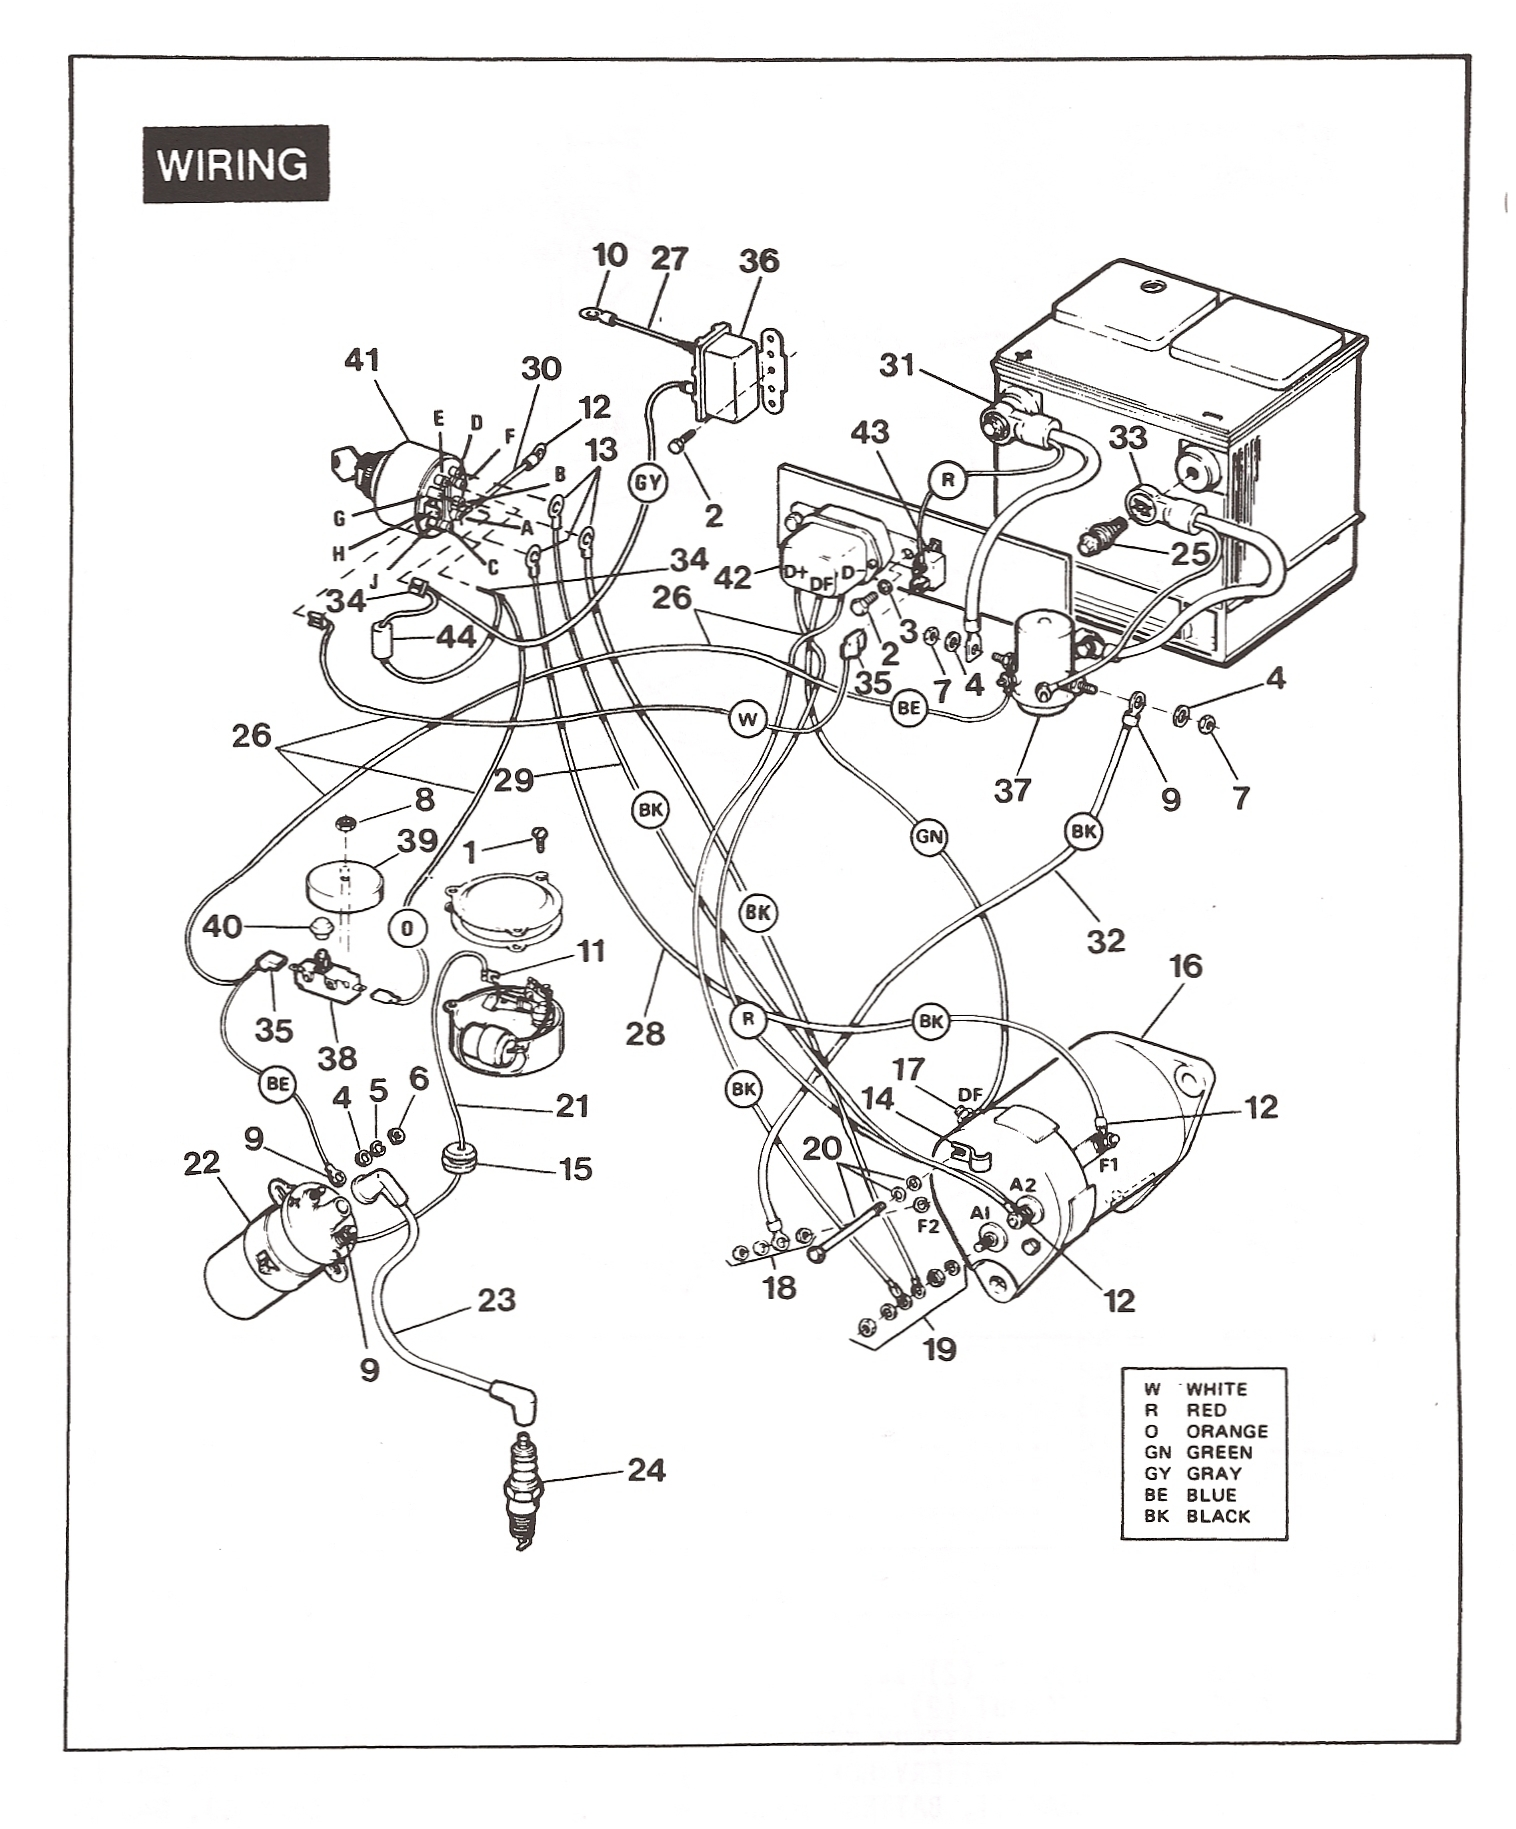 Faq also Evo Motorcycle Engine Diagram besides 80 Harley Evo Engine Diagram in addition 267122 83 Flh Need Oil Line Routing Diagram in addition Harley V Twin Engine Diagram. on harley davidson evolution motor diagram